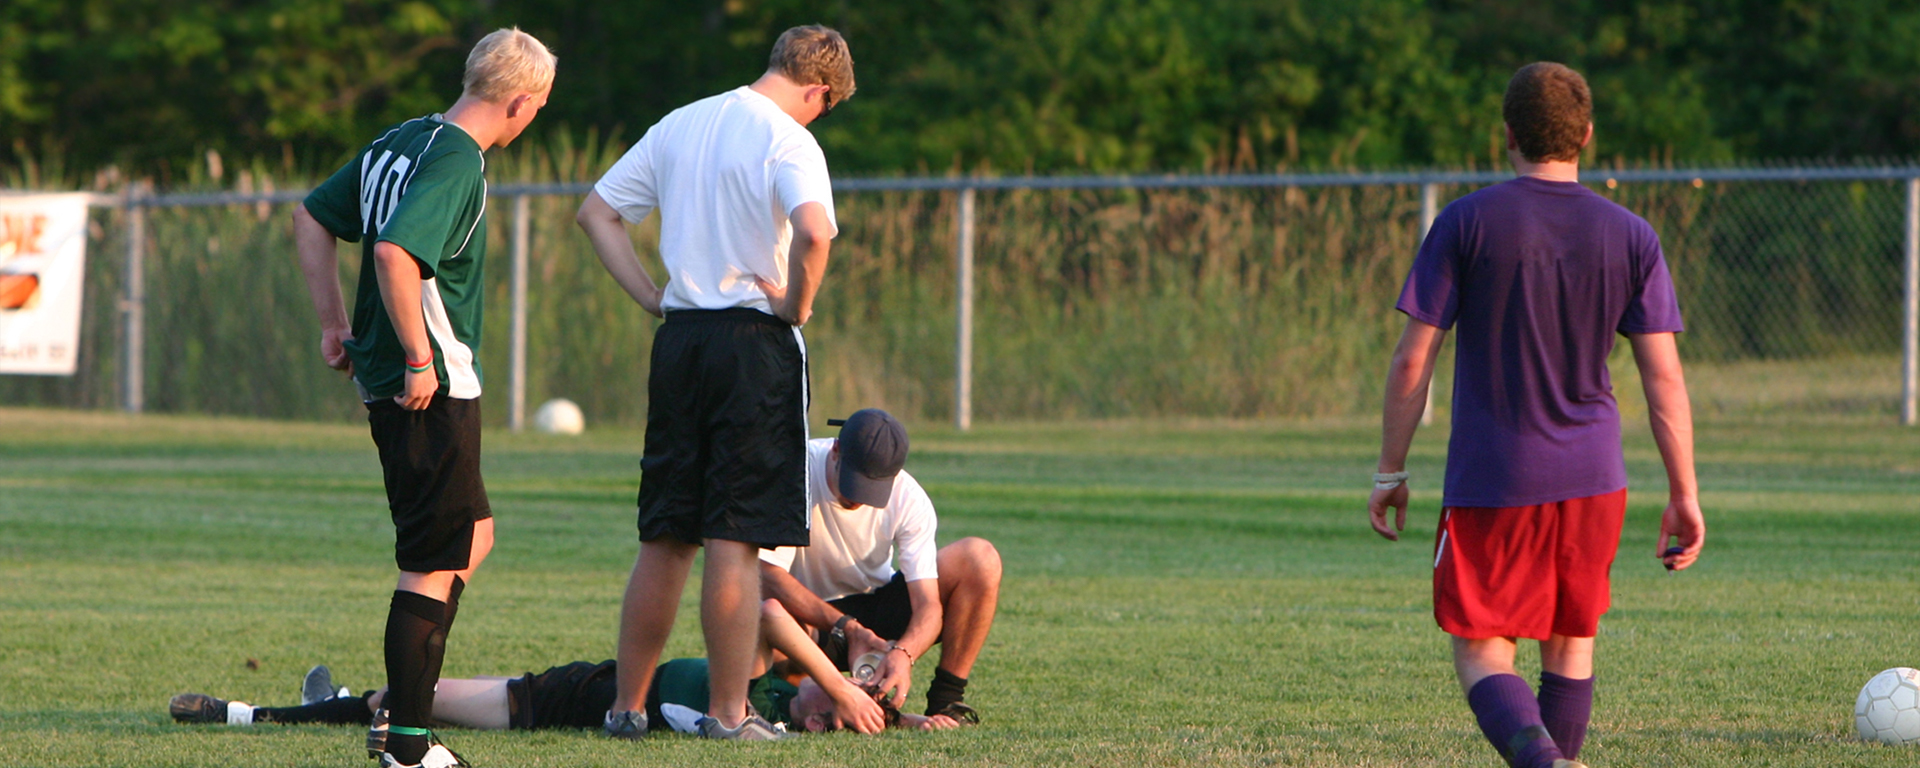 How Do You Identify and Manage a Concussion?